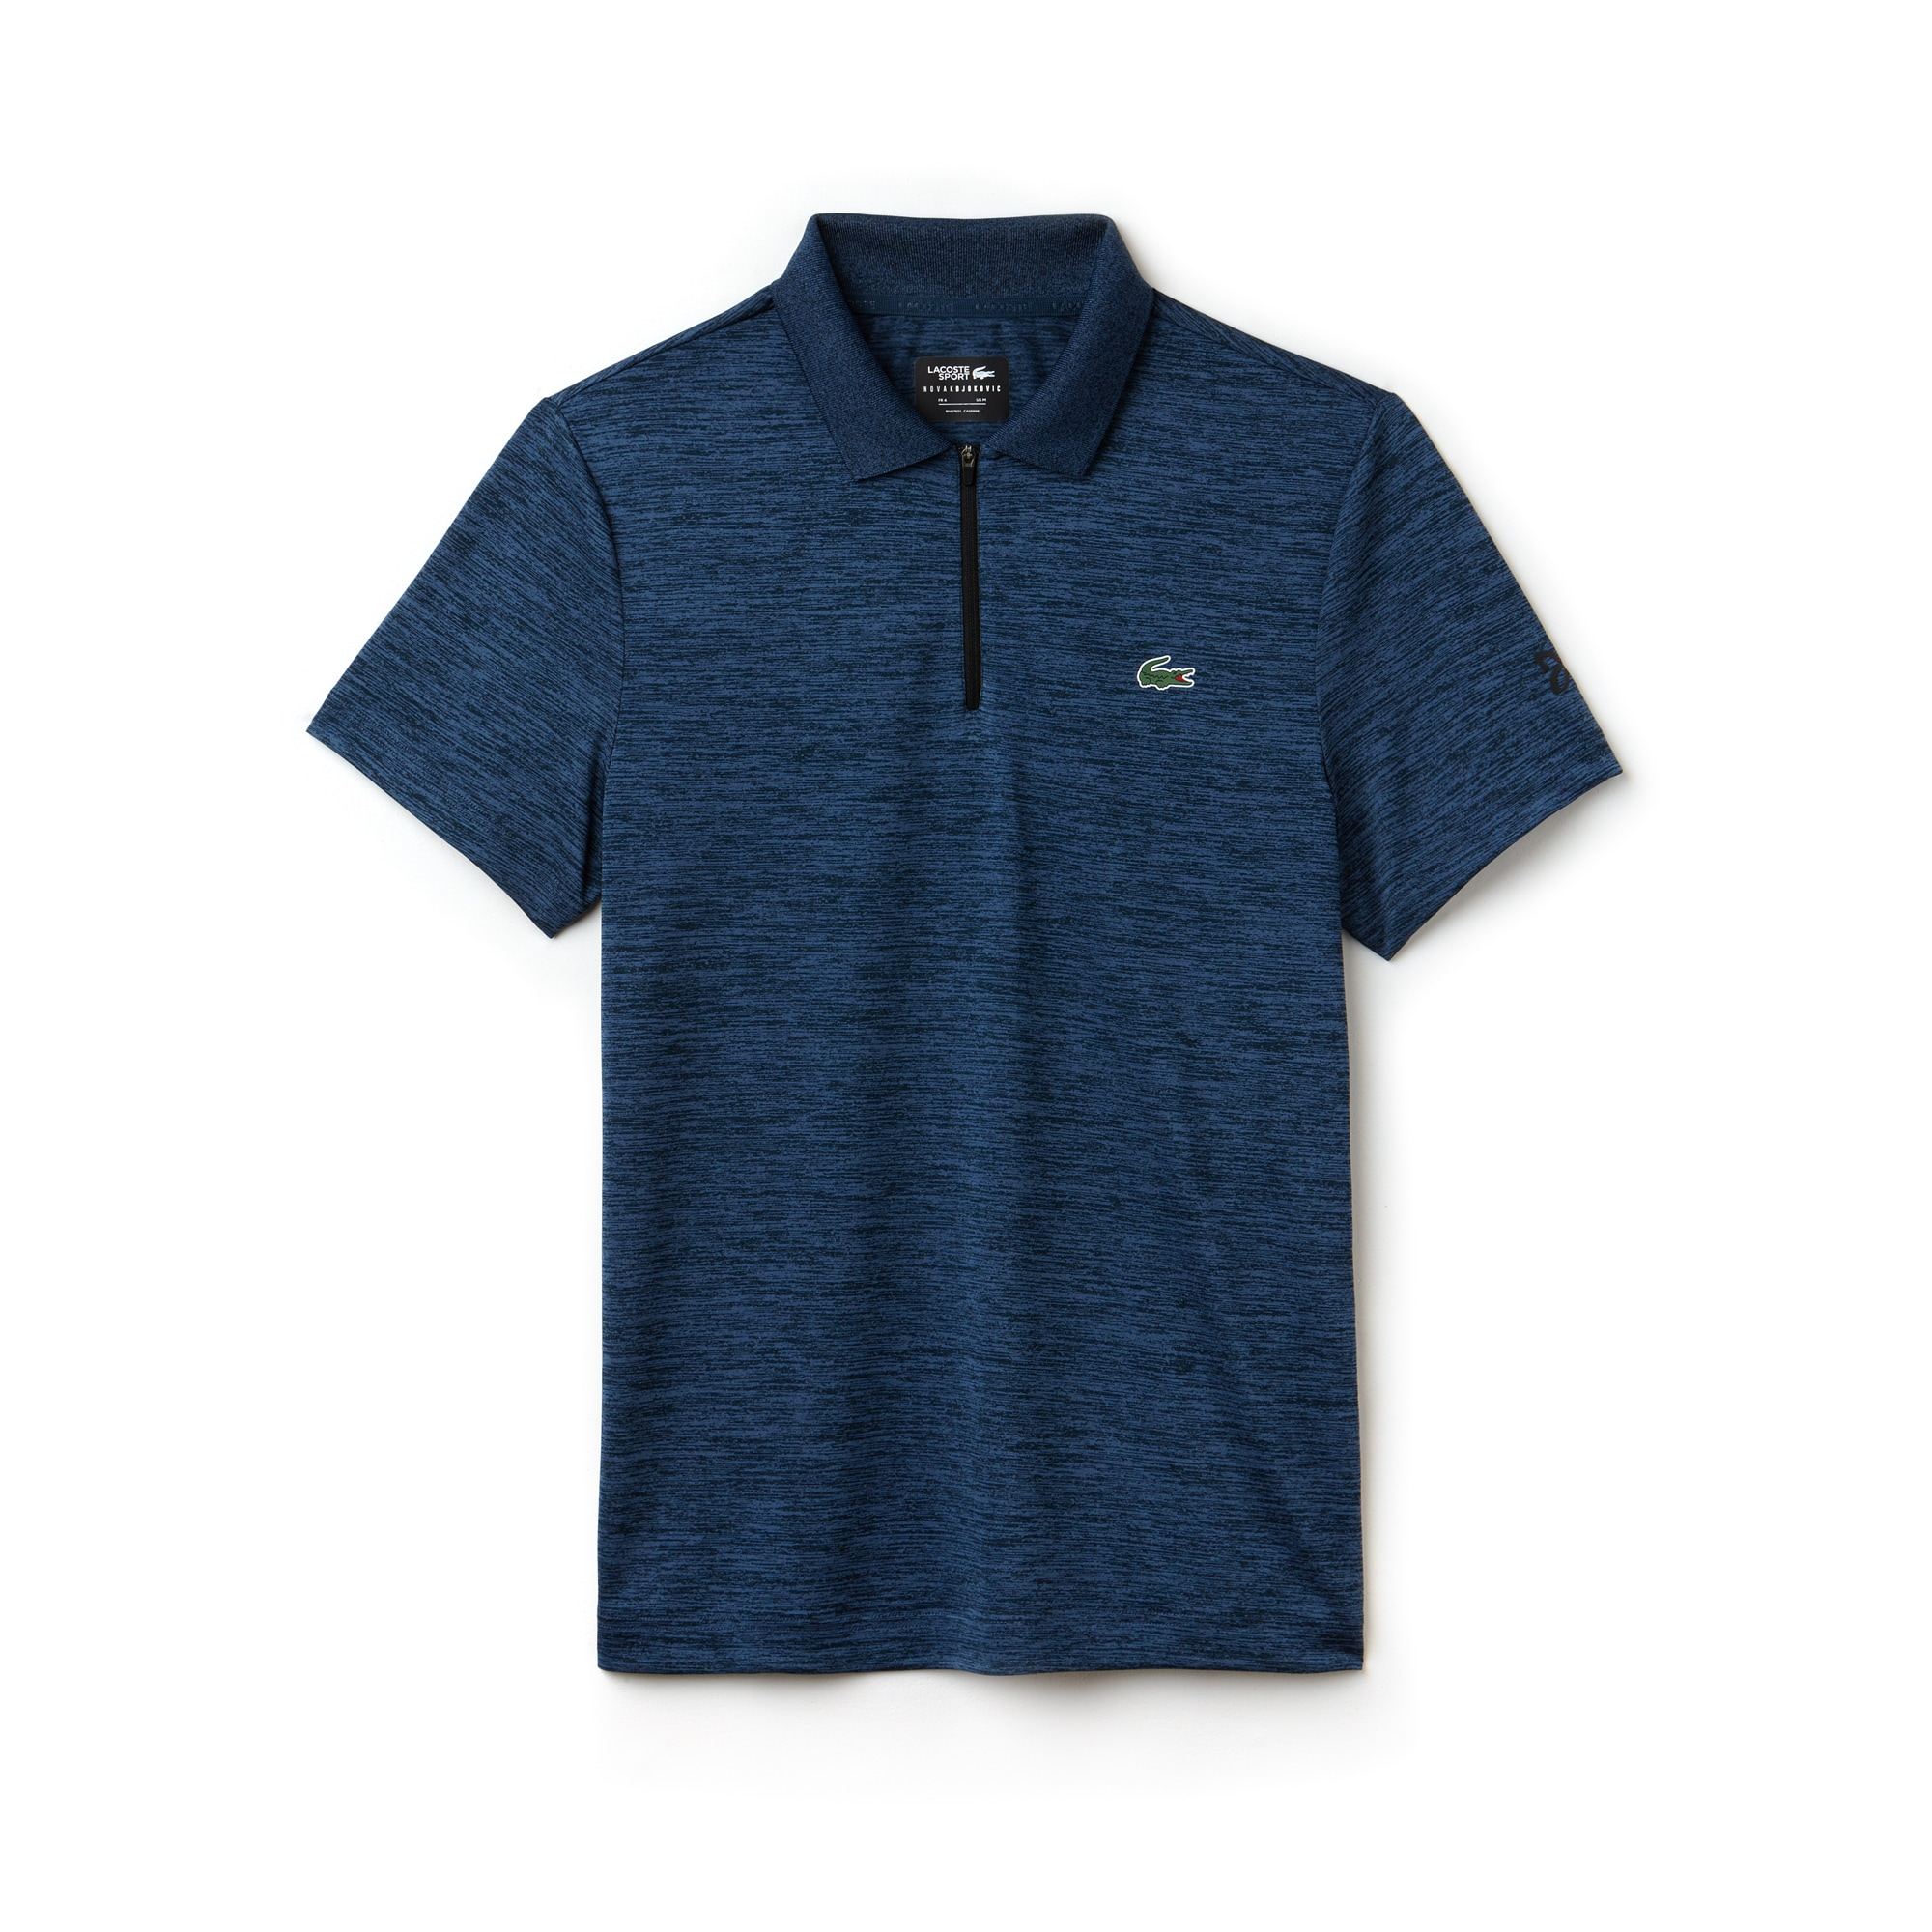 Men's Lacoste SPORT NOVAK DJOKOVIC-OFF COURT COLLECTION Flecked Technical Jersey Polo Shirt